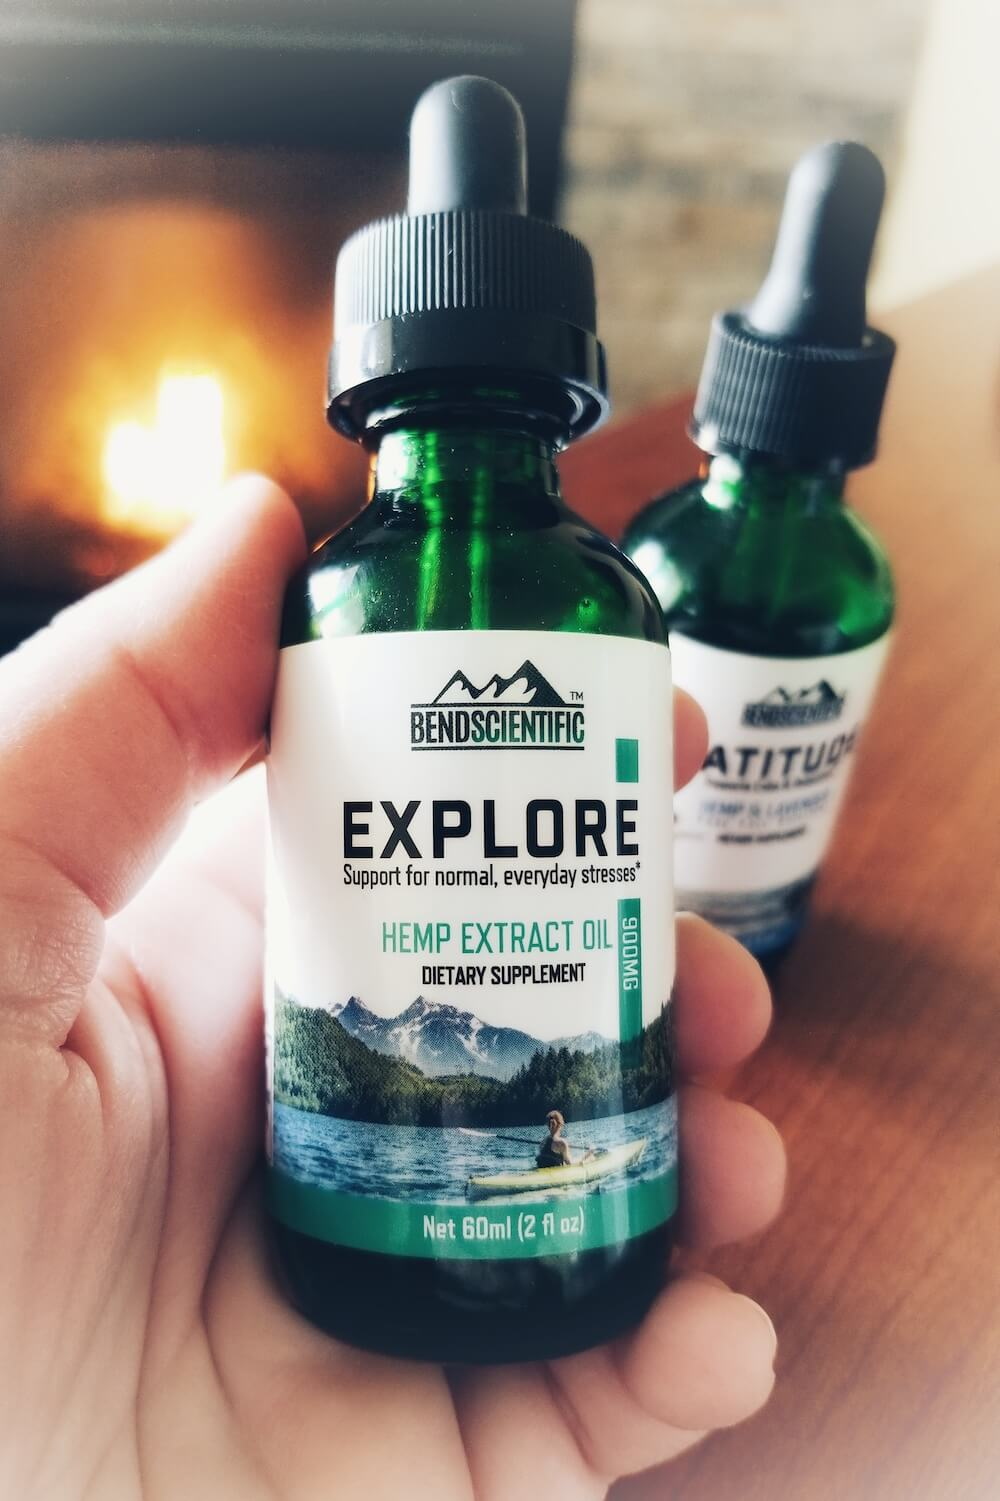 Explore Hemp Extract Oil from Bend Scientific